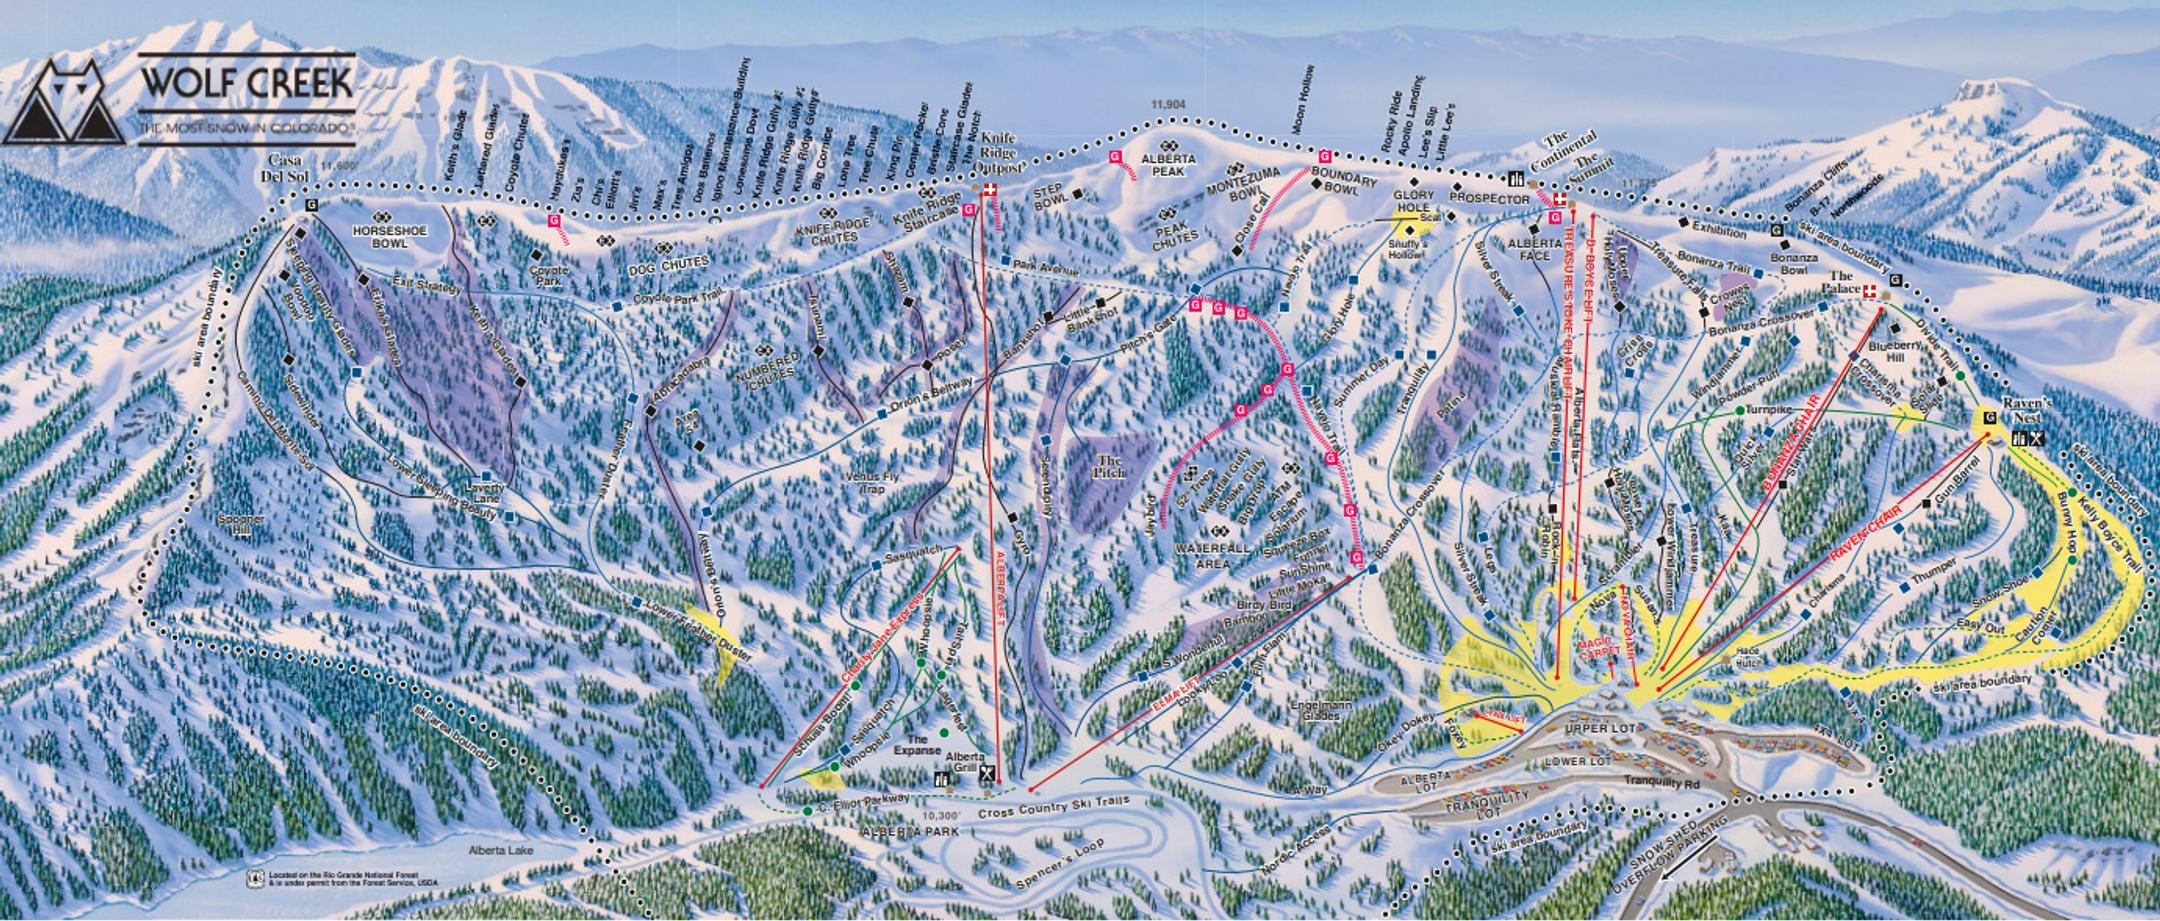 Wolf Creek ski-resort-trail-map United States ripatrip